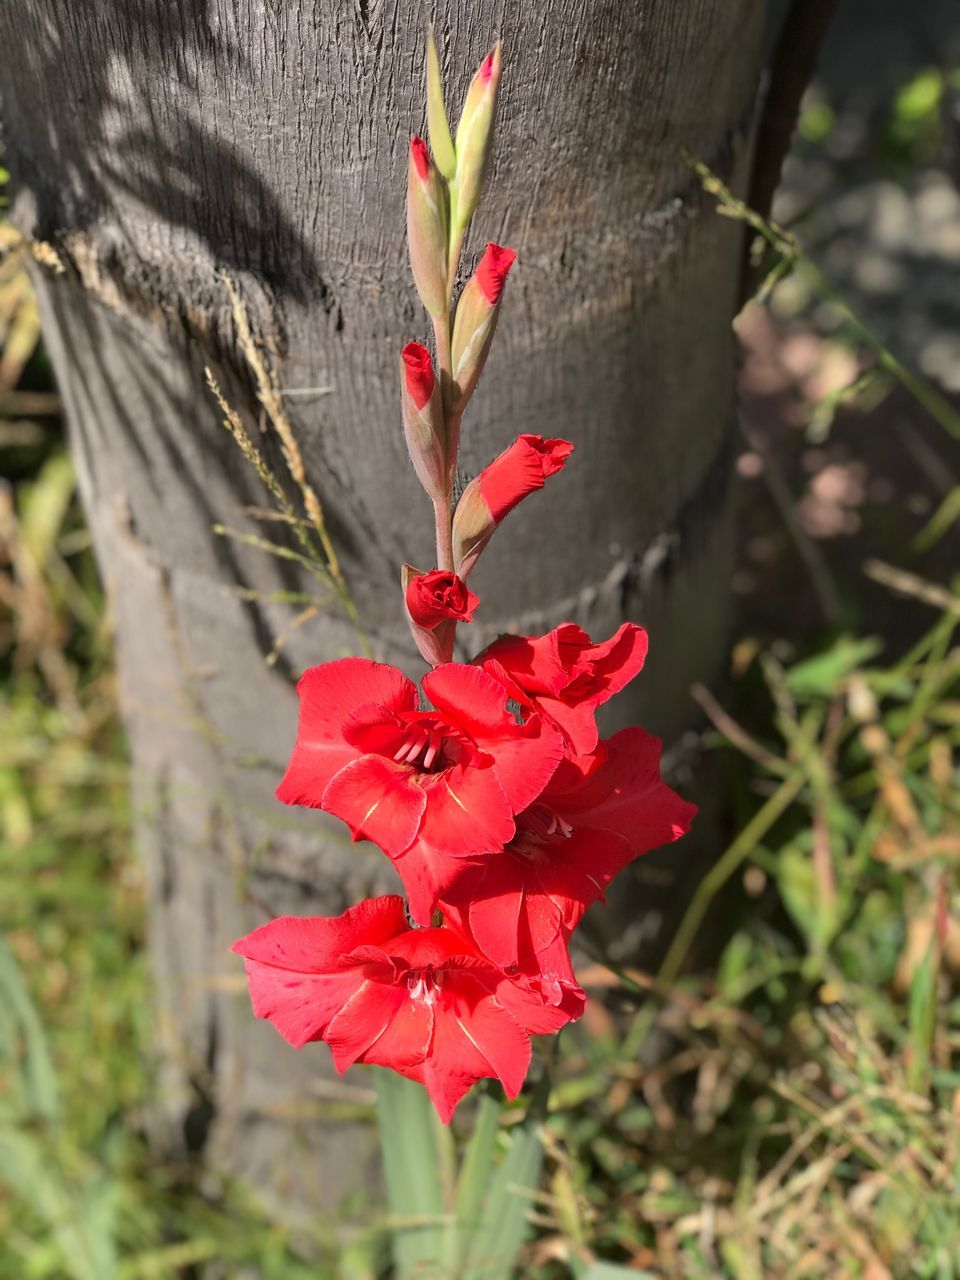 red, nature, growth, petal, beauty in nature, no people, fragility, flower, outdoors, day, close-up, plant, hibiscus, blooming, flower head, freshness